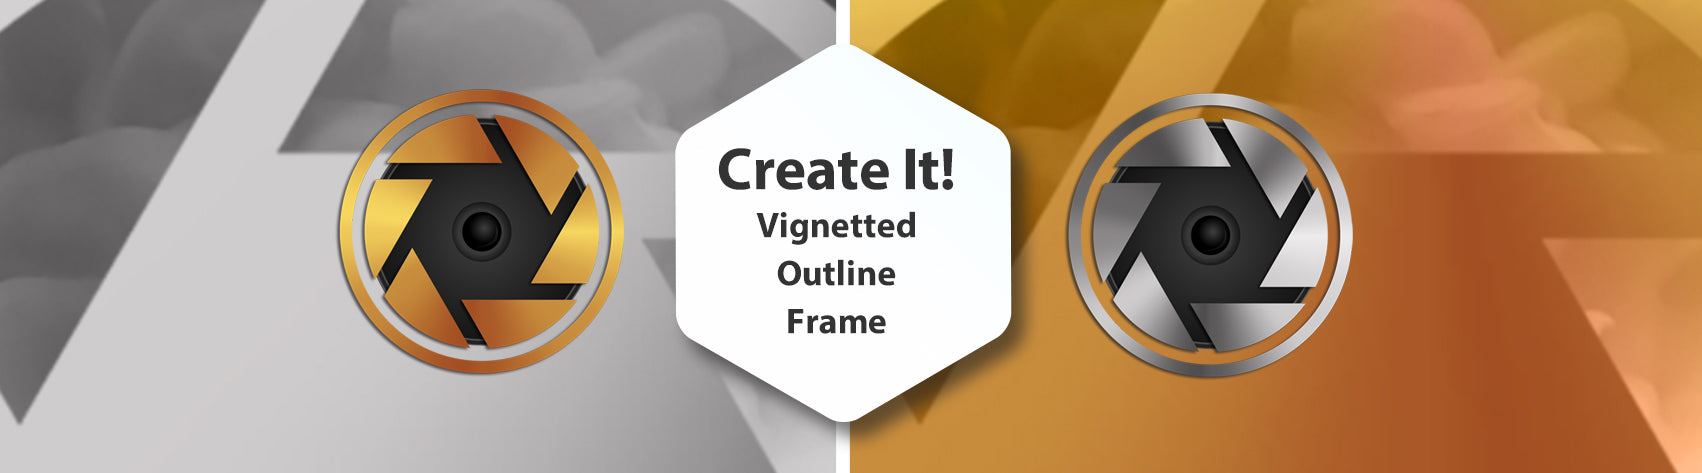 Create It - Vignetted Outline Frame